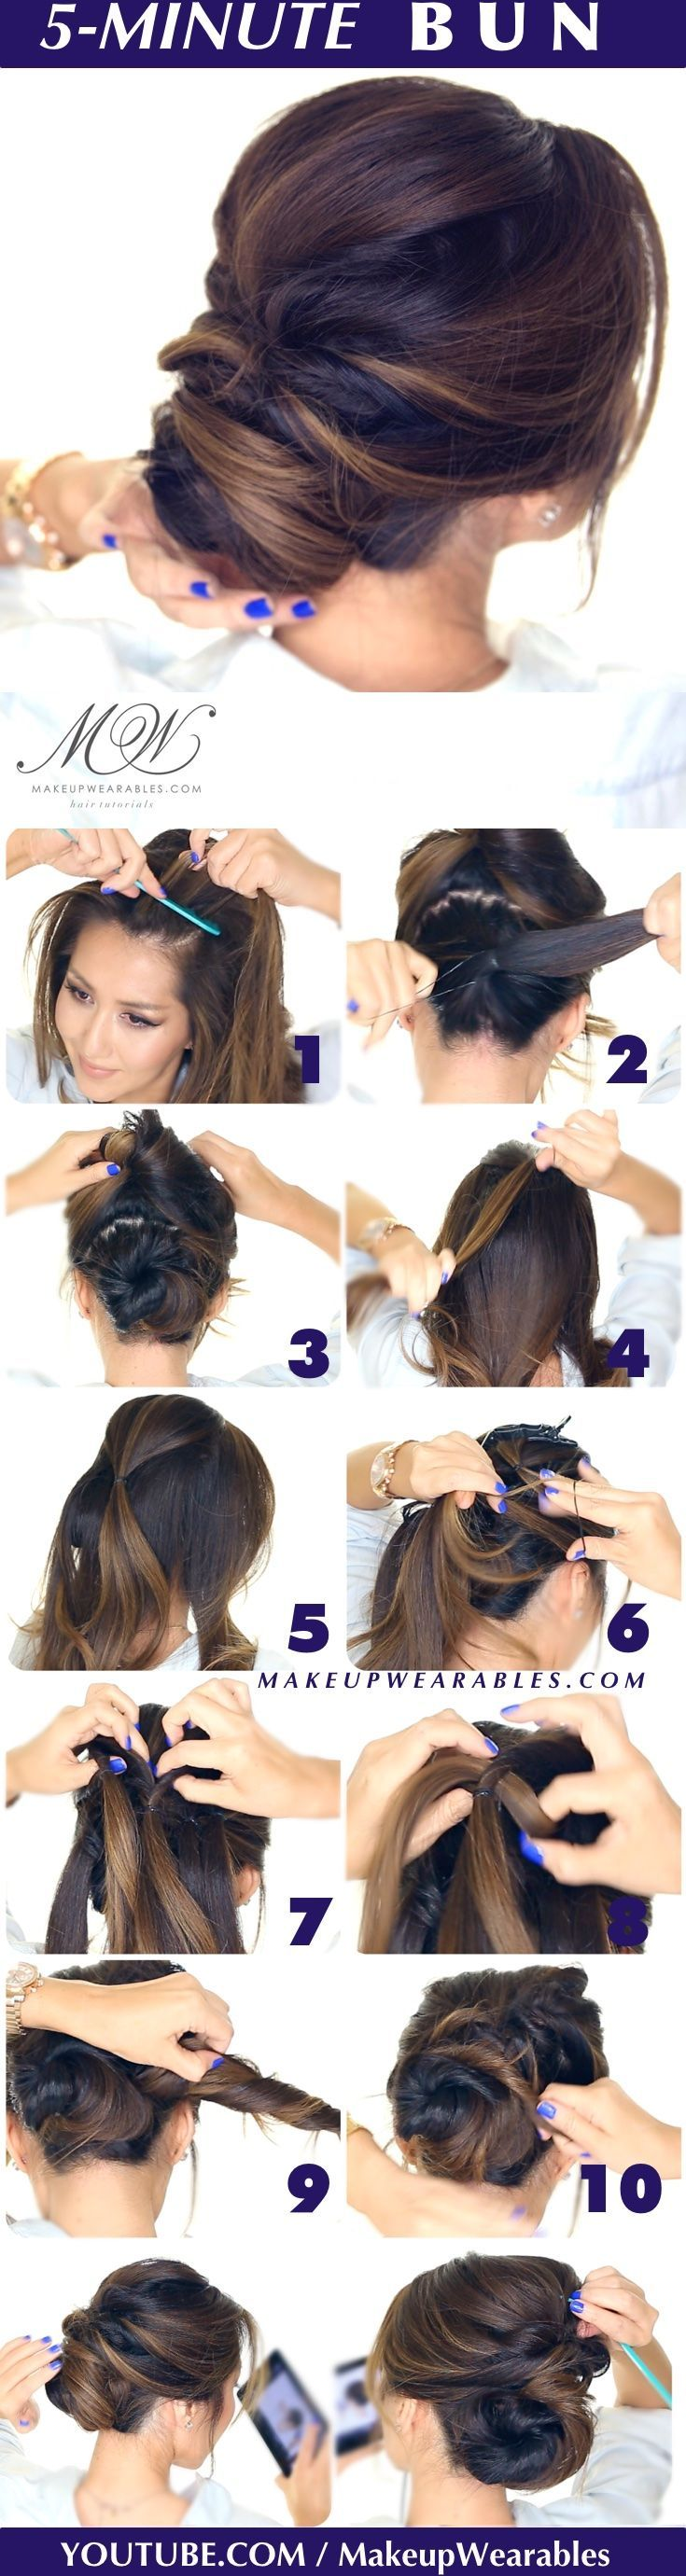 362 best Hair tutorials images on Pinterest